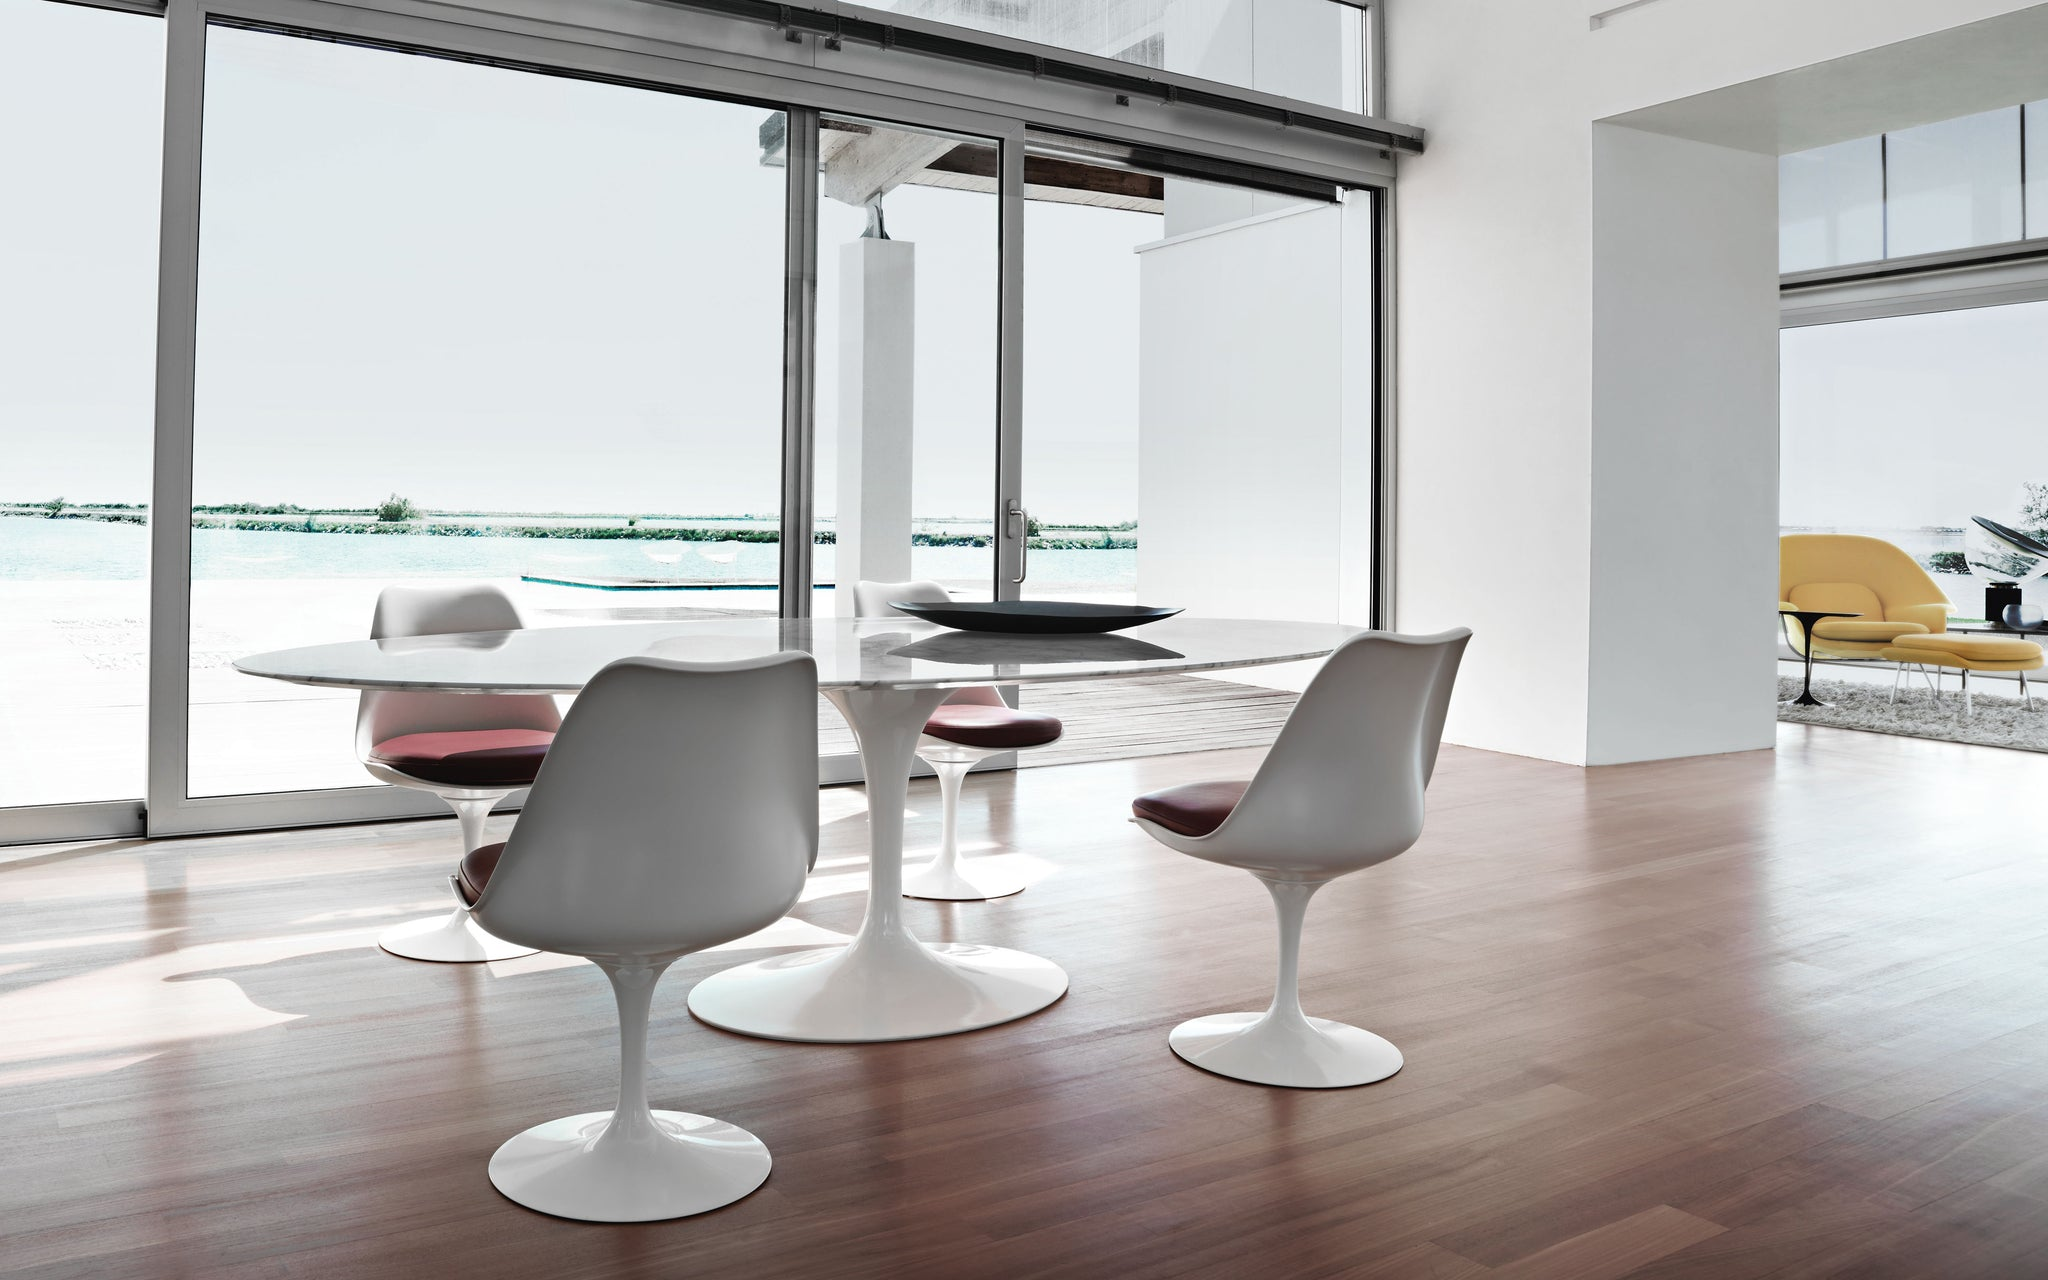 saarinen table and chairs